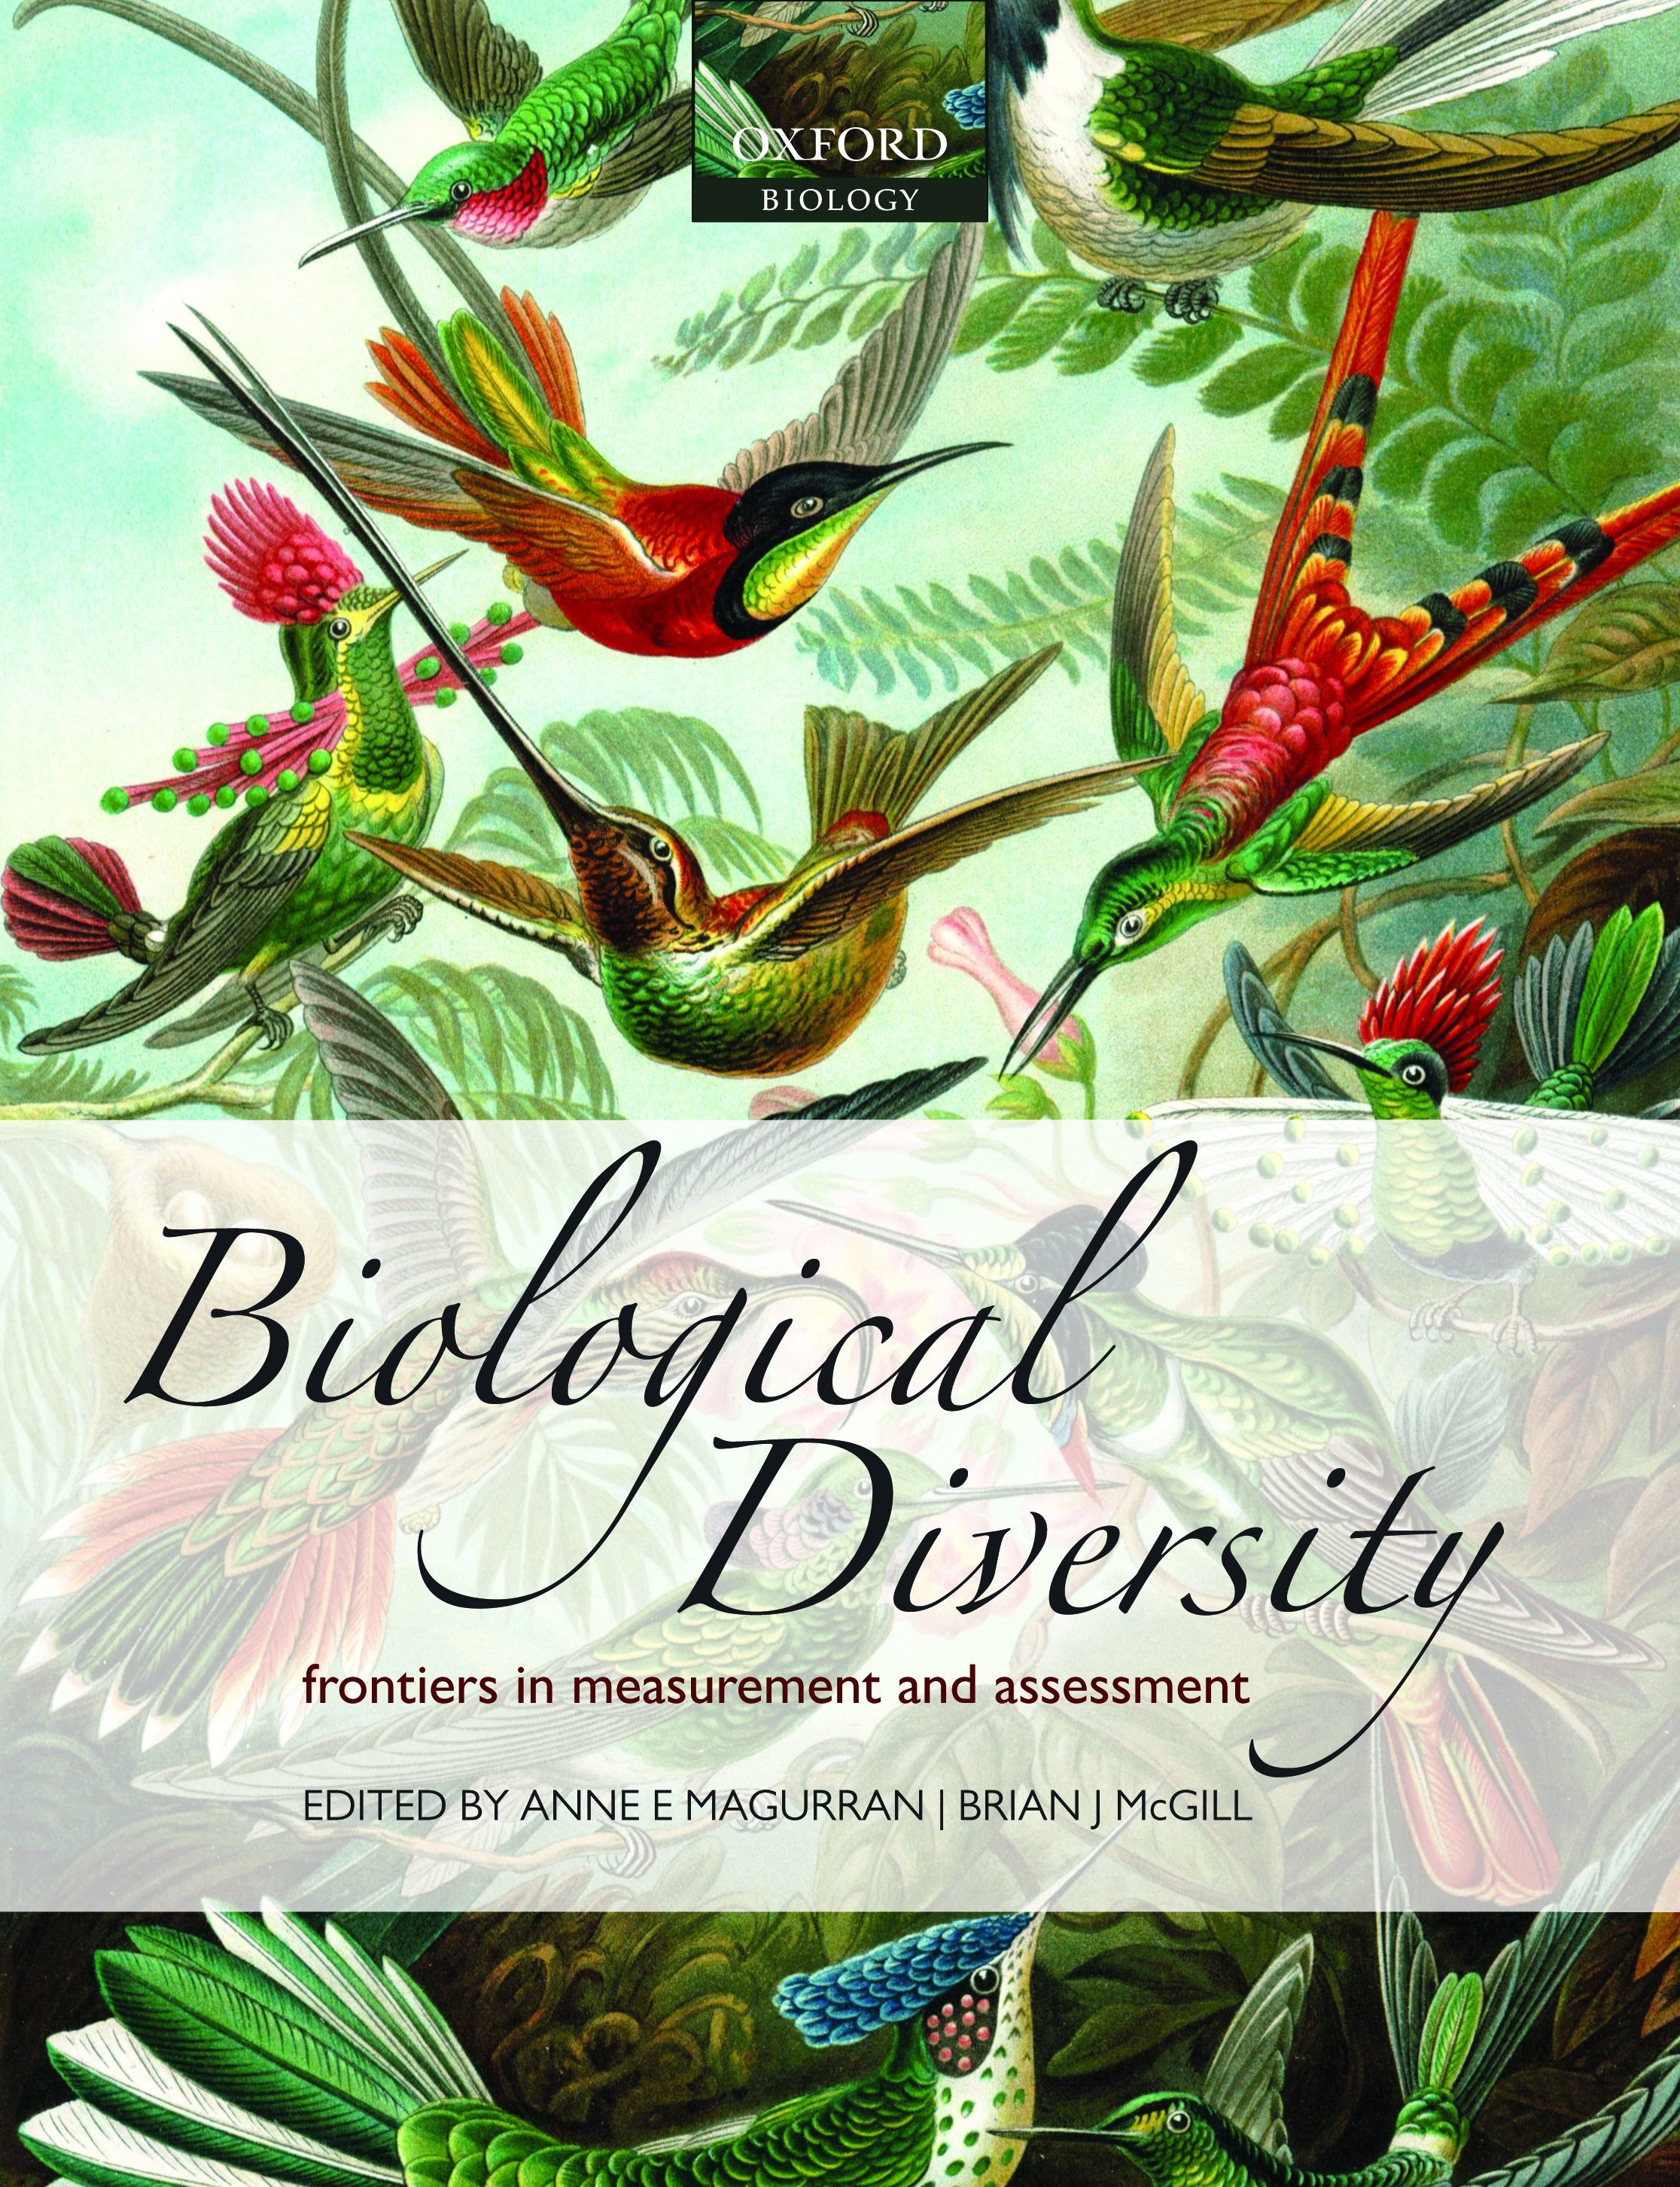 Book chapter on phylogenetic diversity